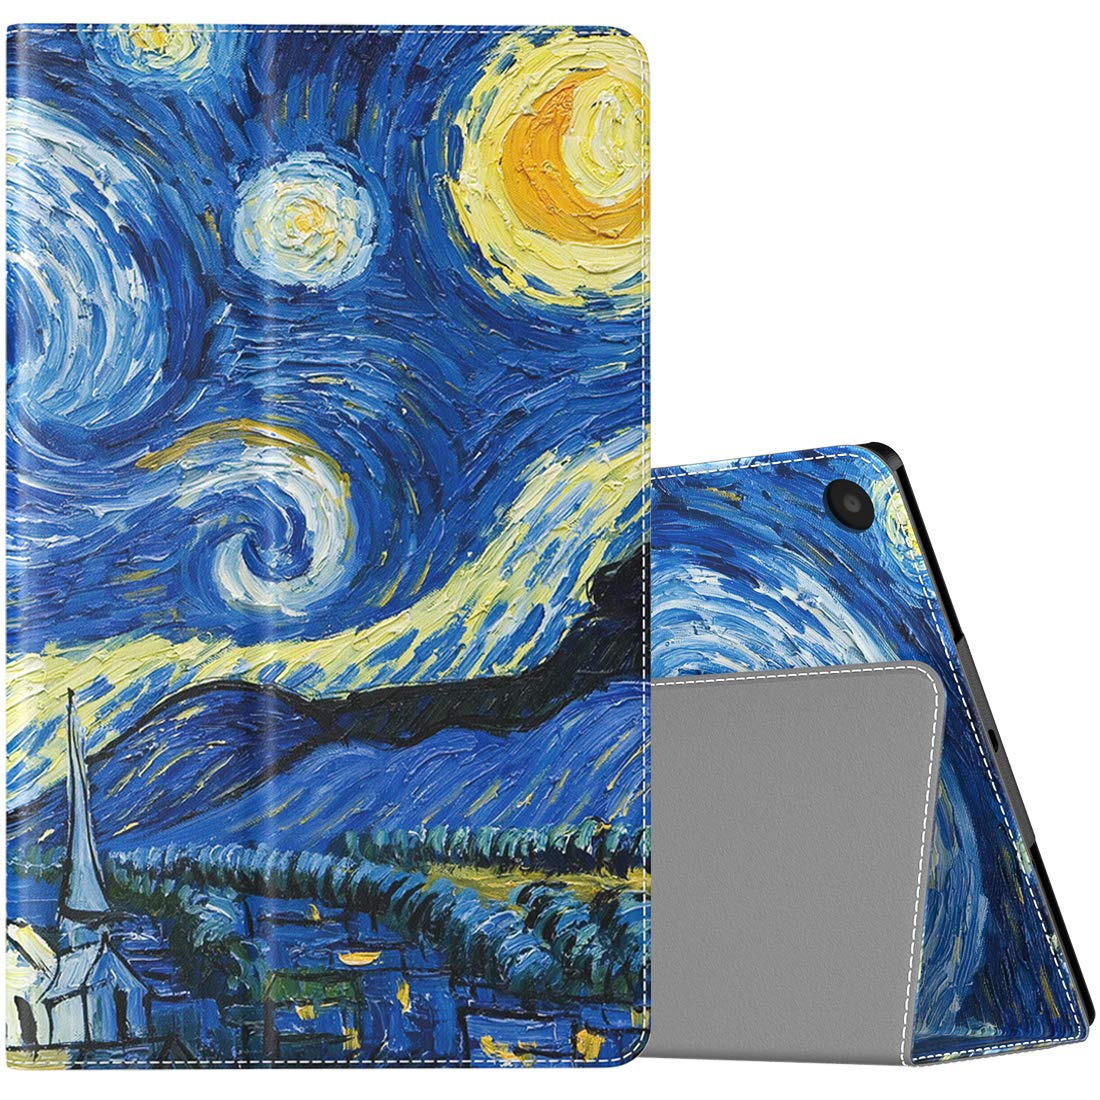 TiMOVO Folio Case for All-New Fire HD 10 Tablet (9th Generation, 2019 Release and 7th Generation, 2017 Release) - Slim Folding PU Leather Stand Cover Case for Amazon Fire HD 10 Tablet, Starry Night